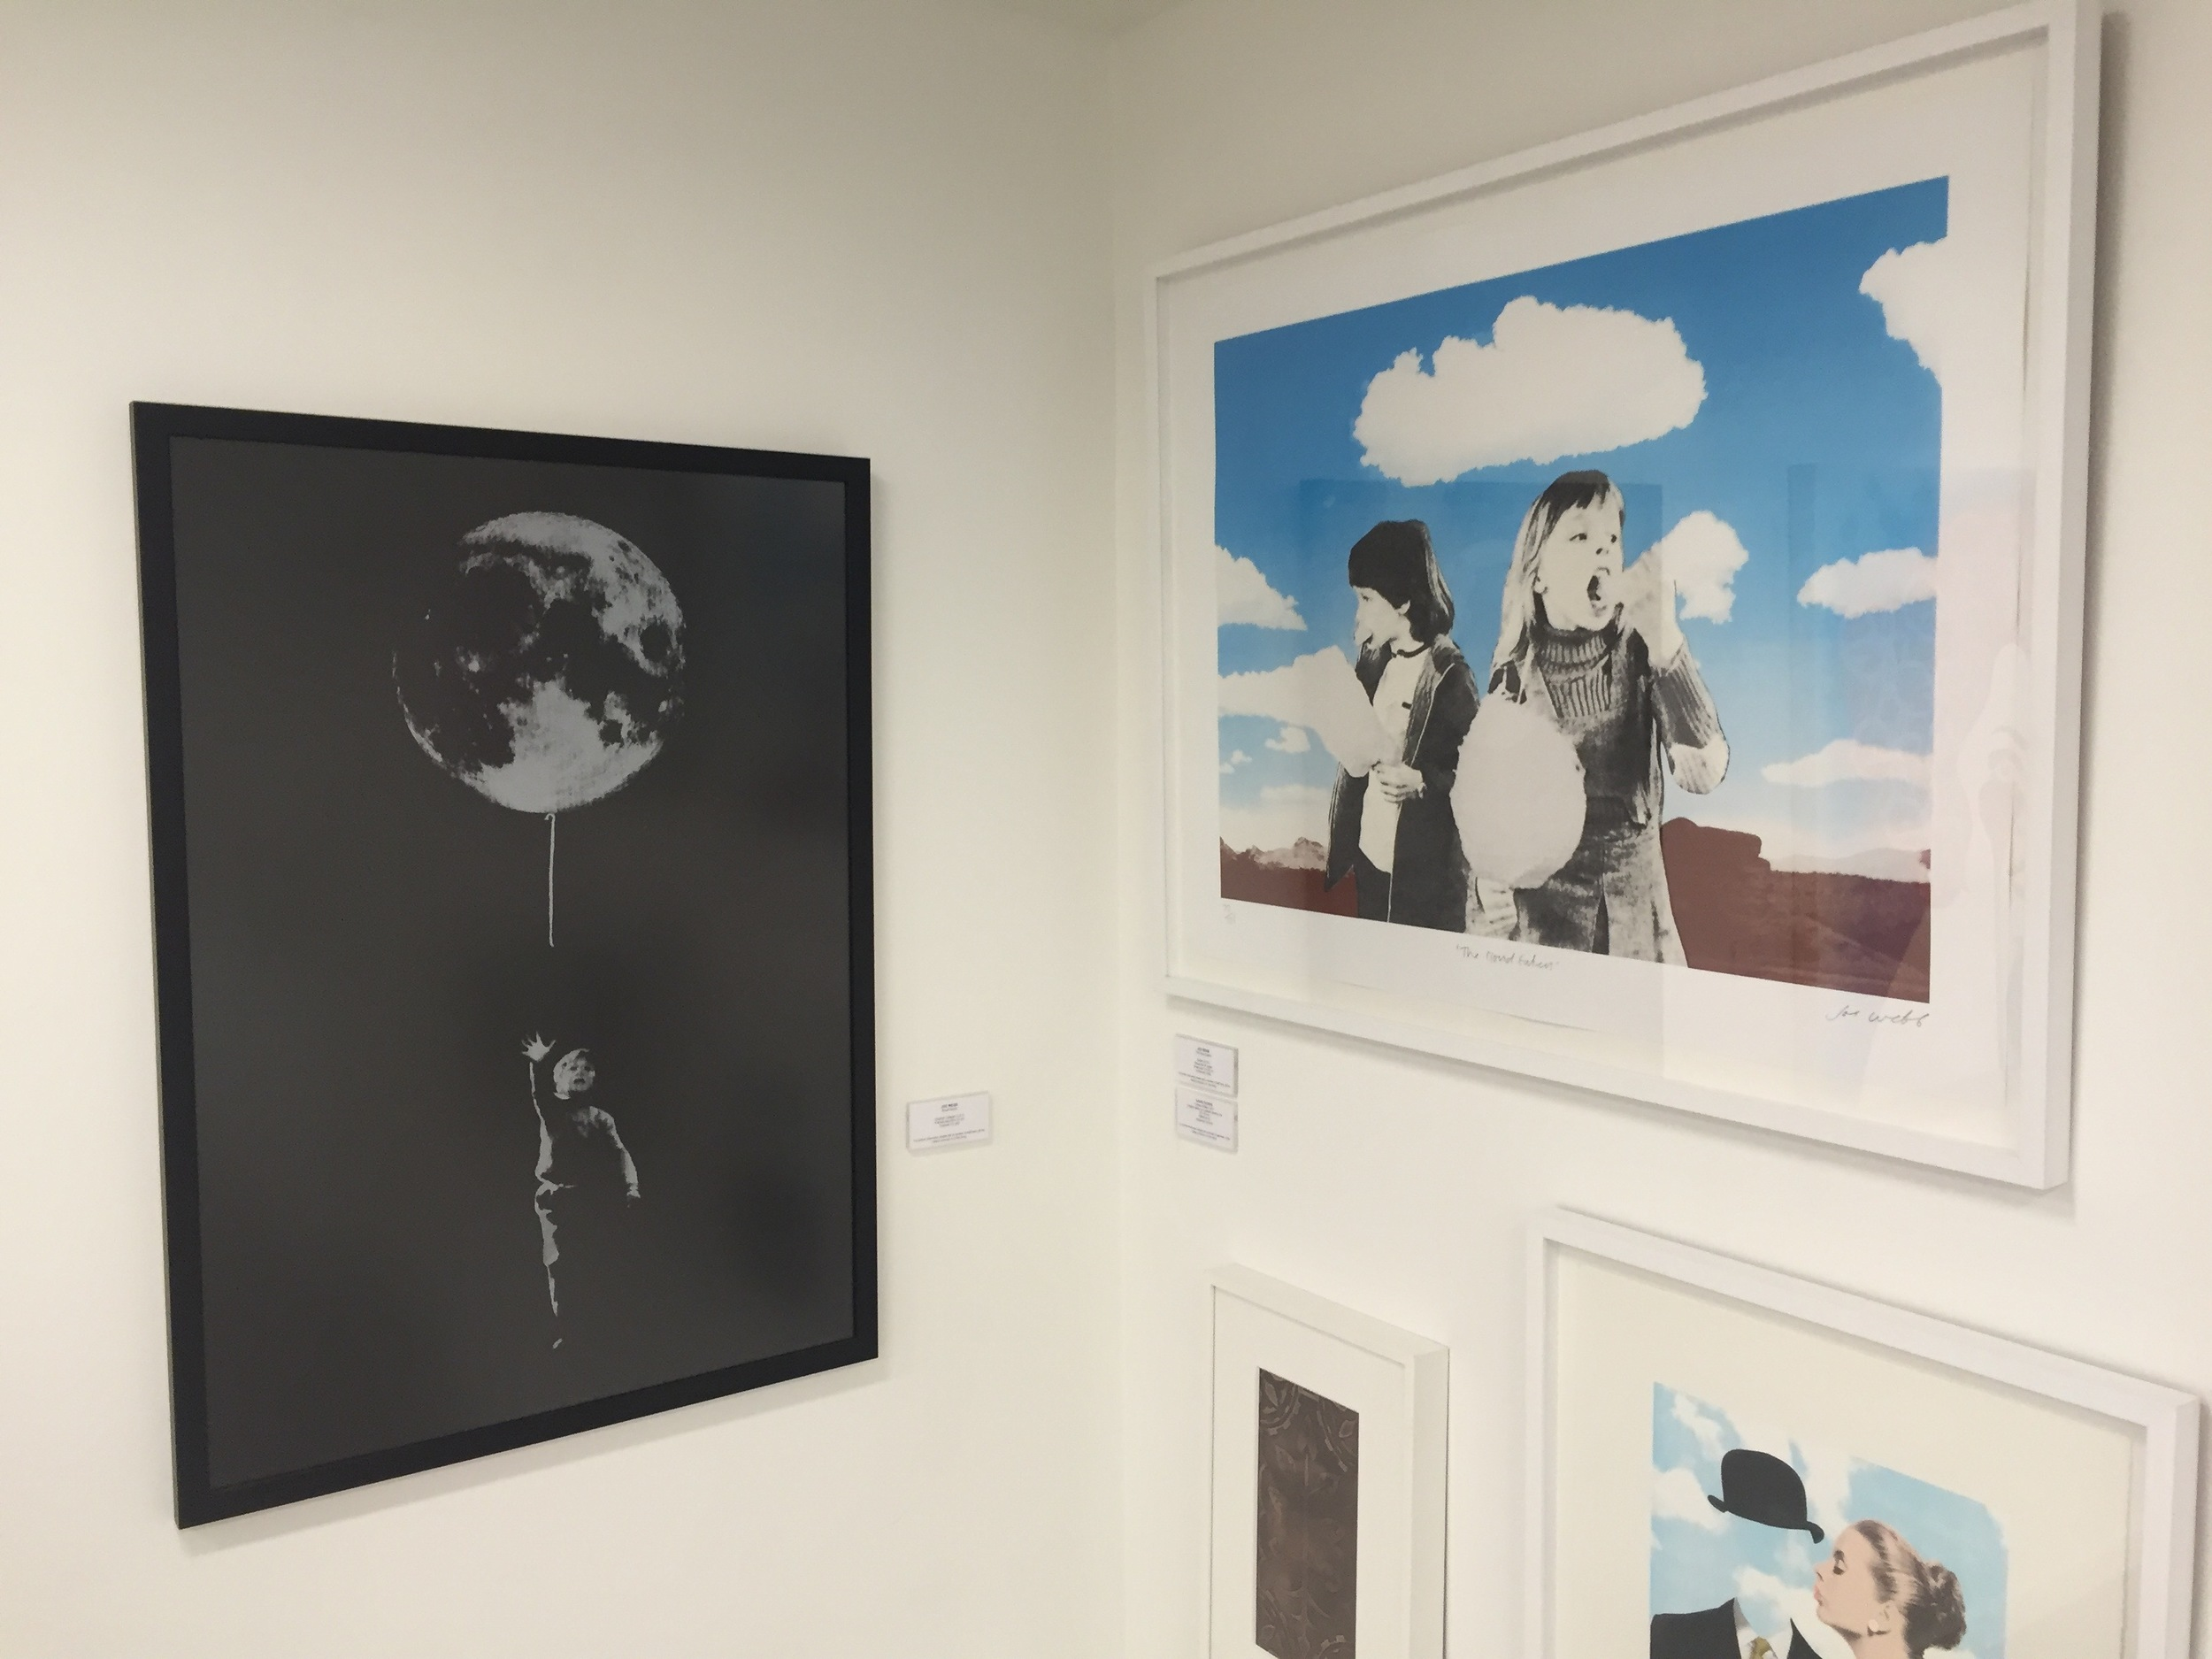 Cloud Eaters on display at the Saatchi Gallery.